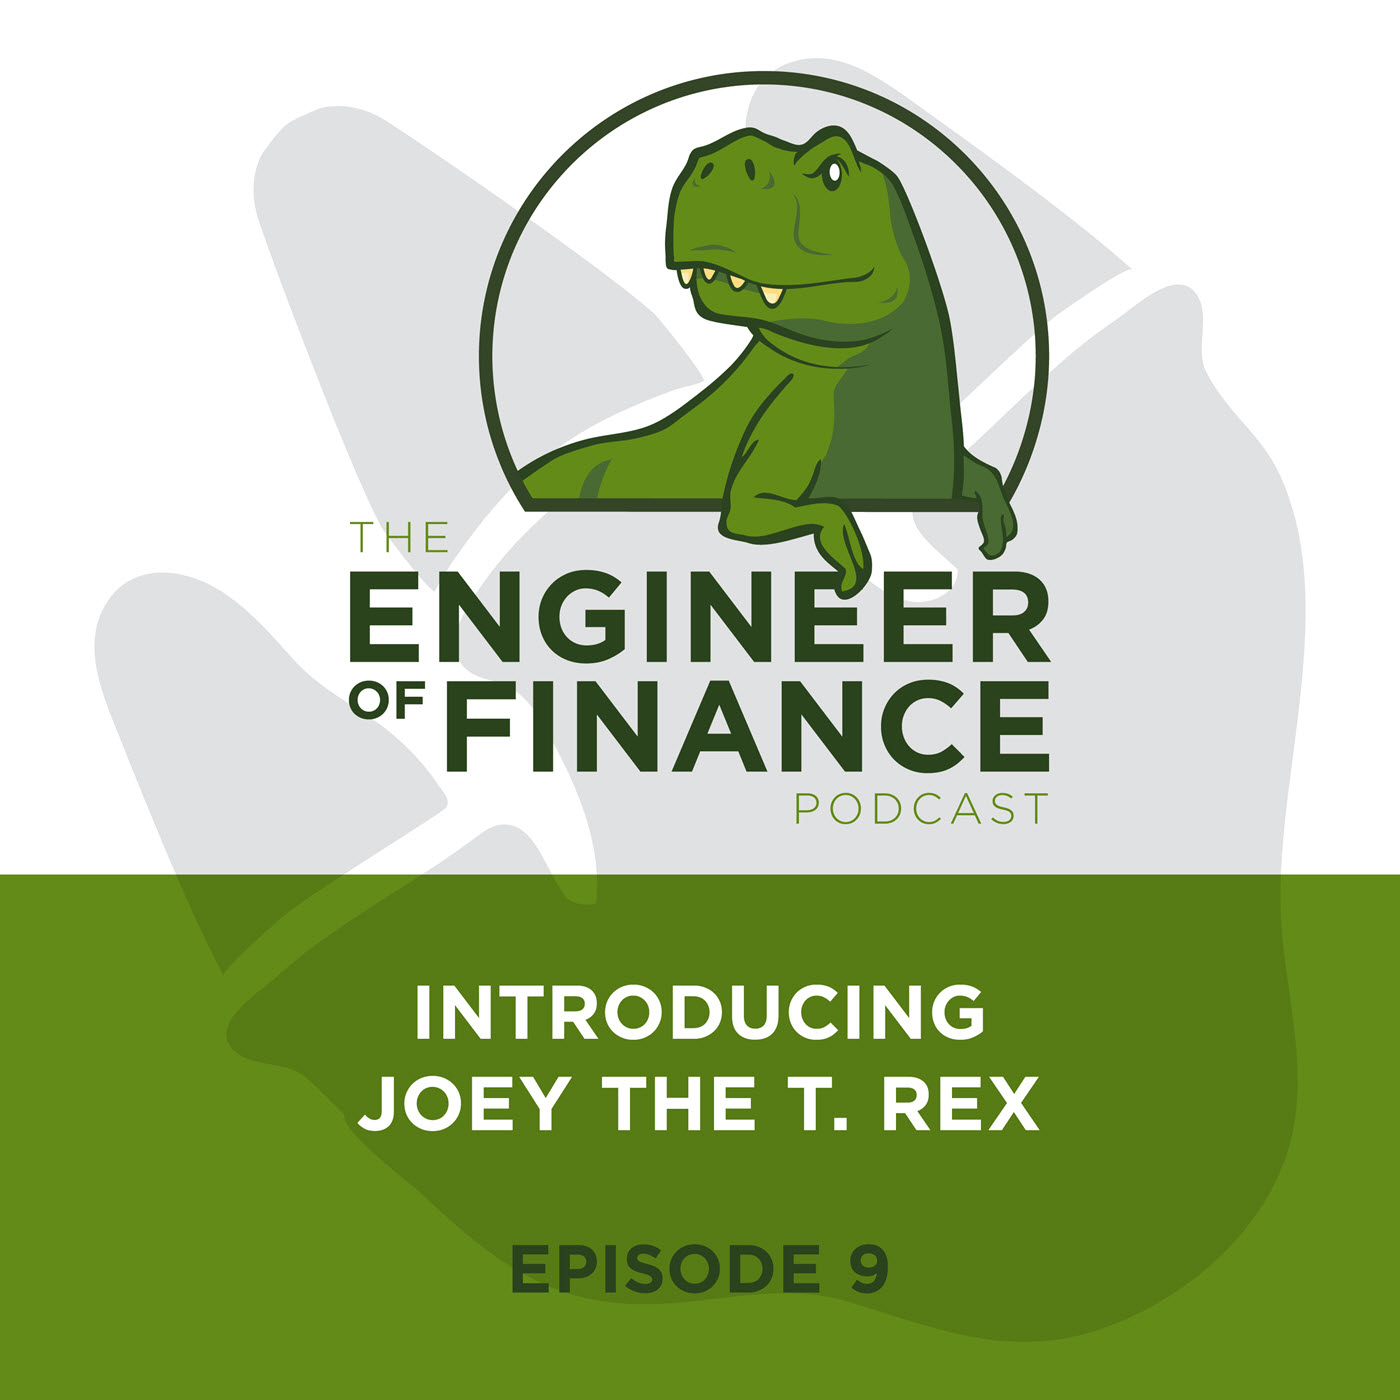 Introducing Joey the T. Rex – Episode 9